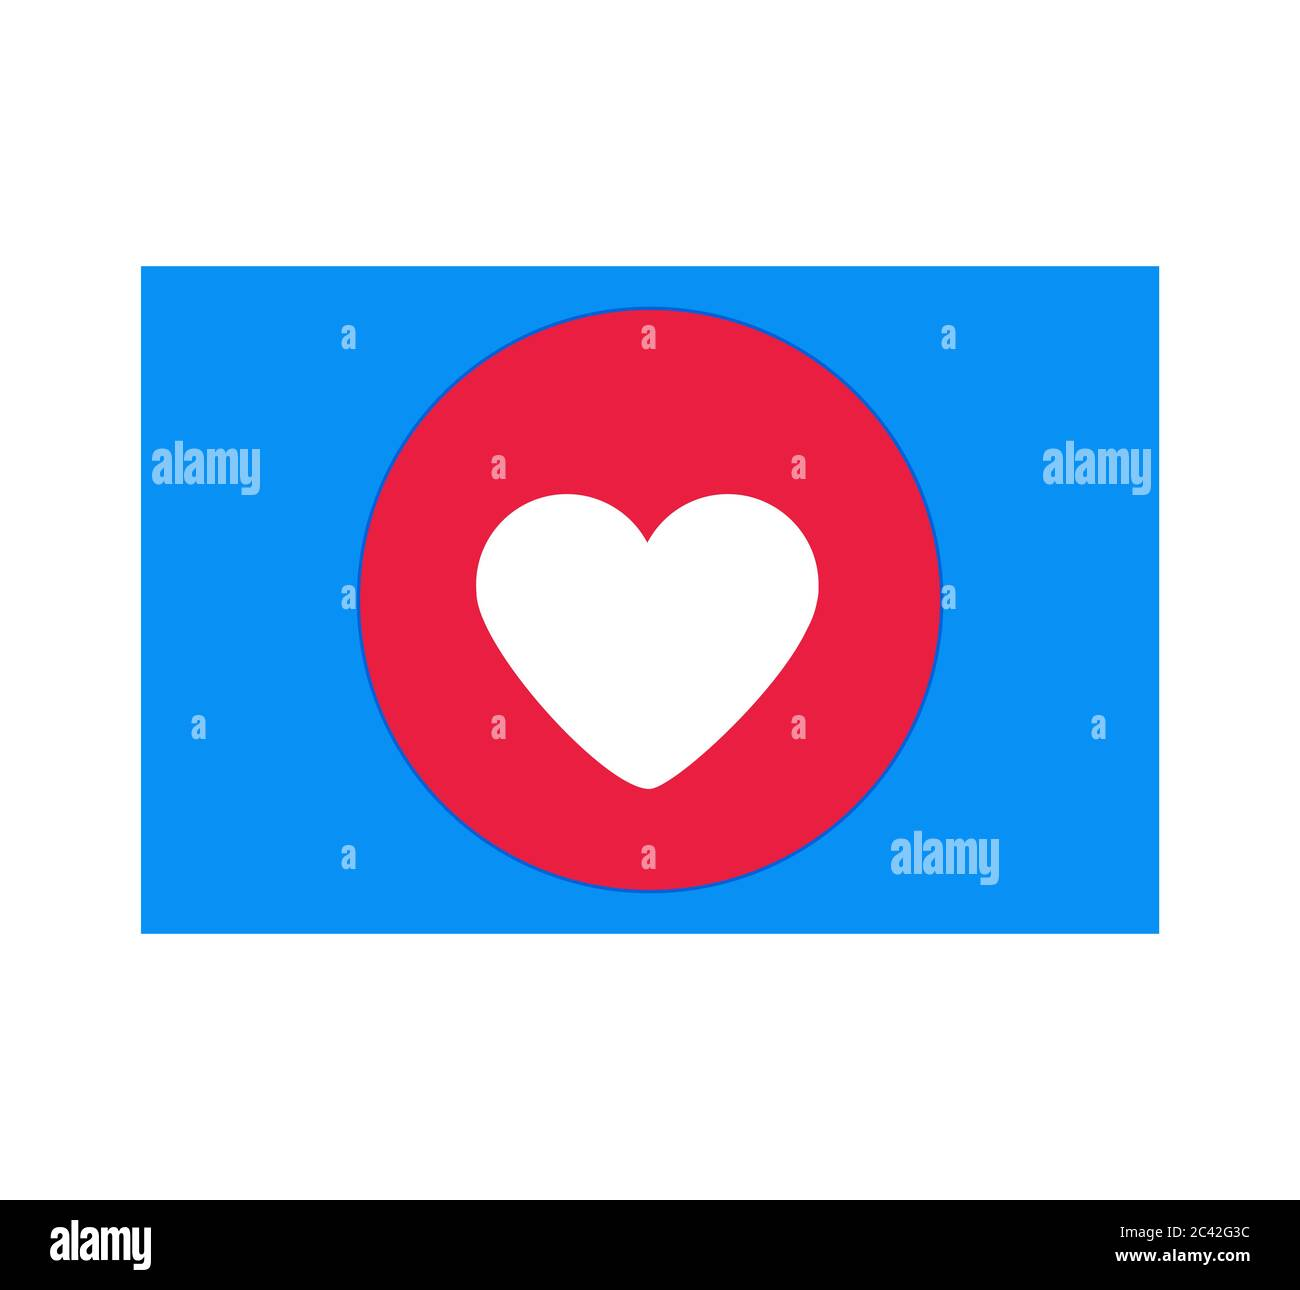 facebook heart logo facebook icon social media icon facebook chat comment reactions kharkiv ukraine june 15 2020 stock photo alamy https www alamy com facebook heart logo facebook icon social media icon facebook chat comment reactions kharkiv ukraine june 15 2020 image363932896 html